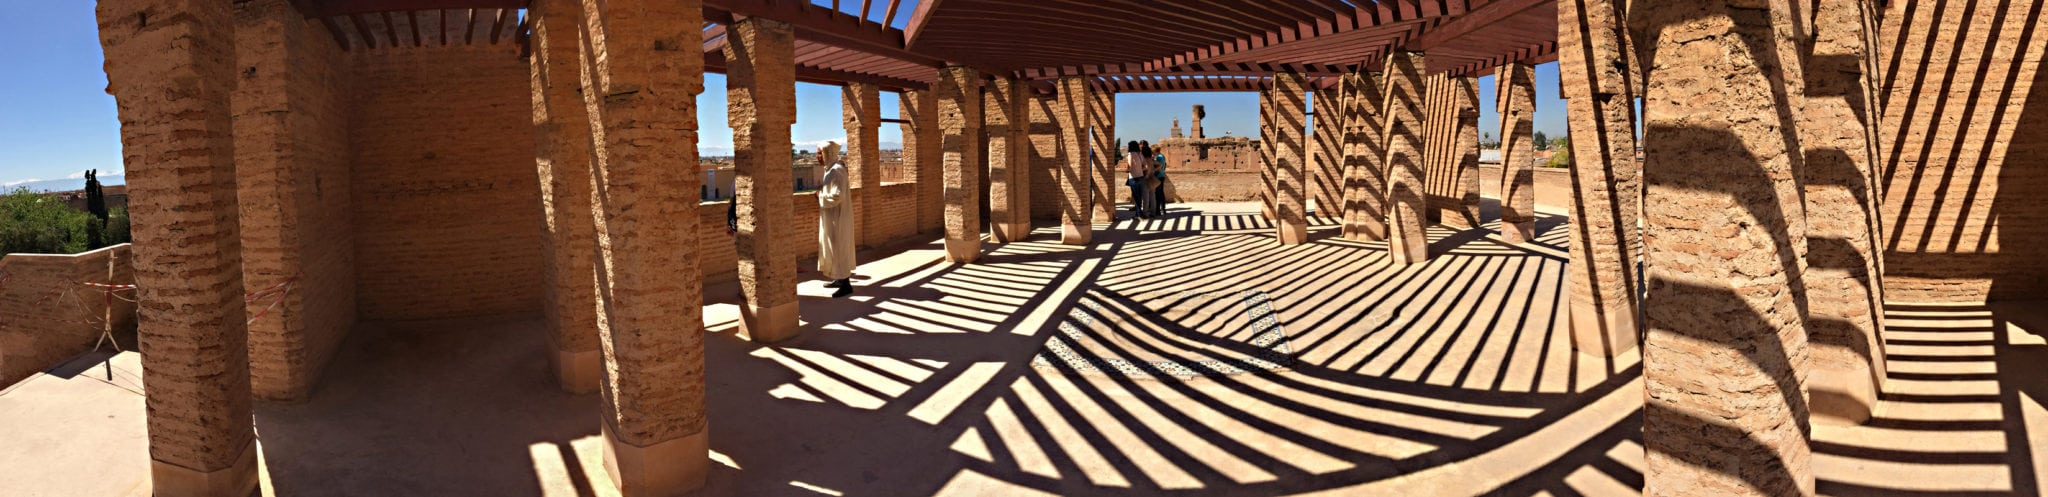 Panorama photo of latticed building with sun light making stripped patterns on ground Corporate Photography Architectural Photography